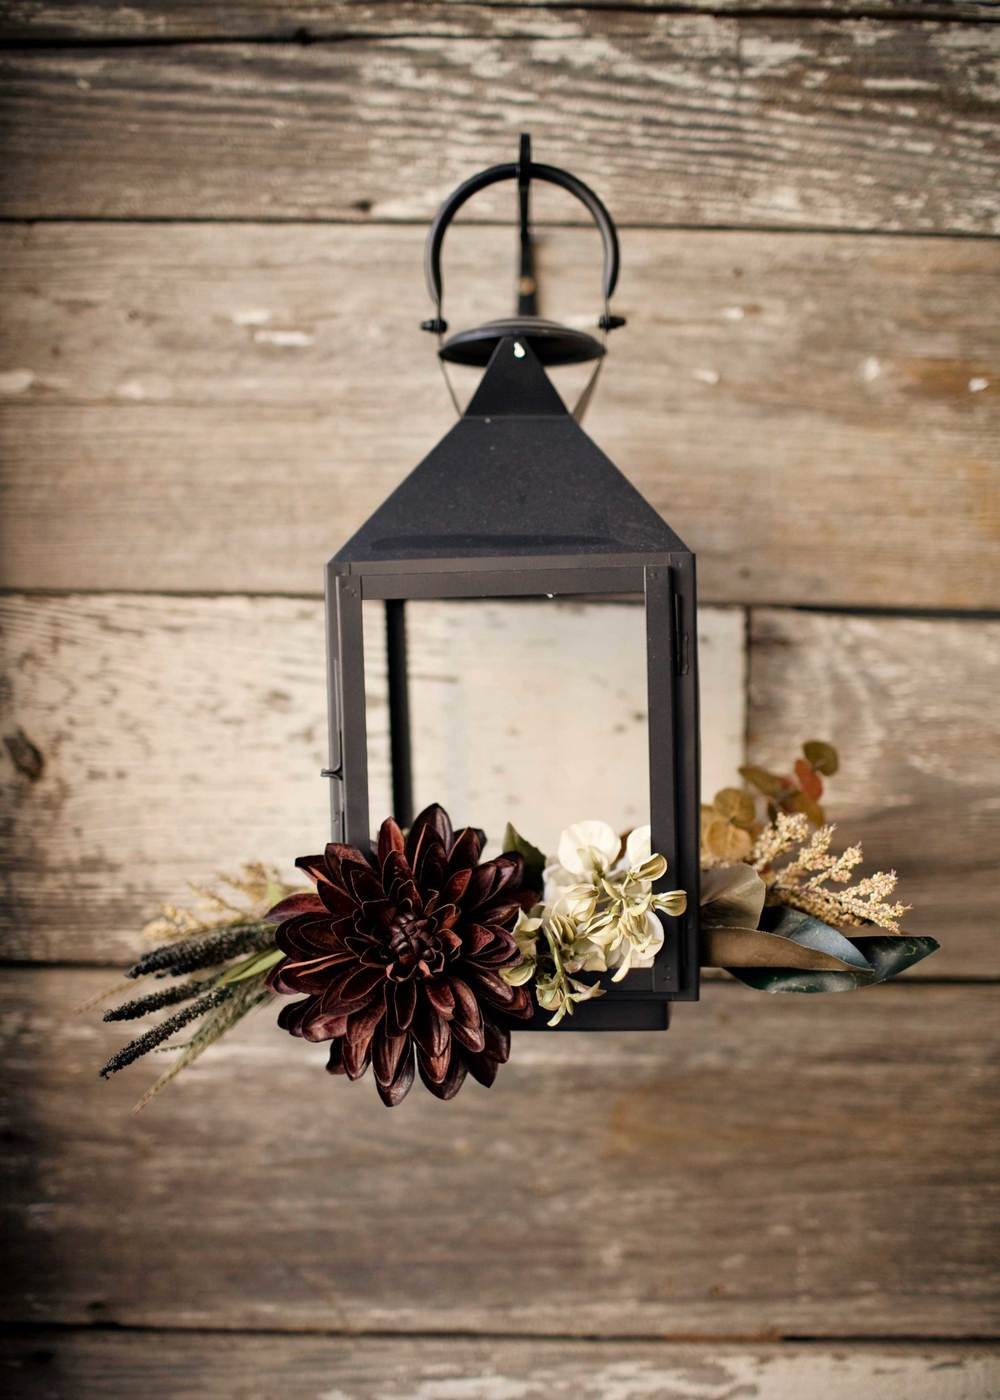 Autumn lantern flowers